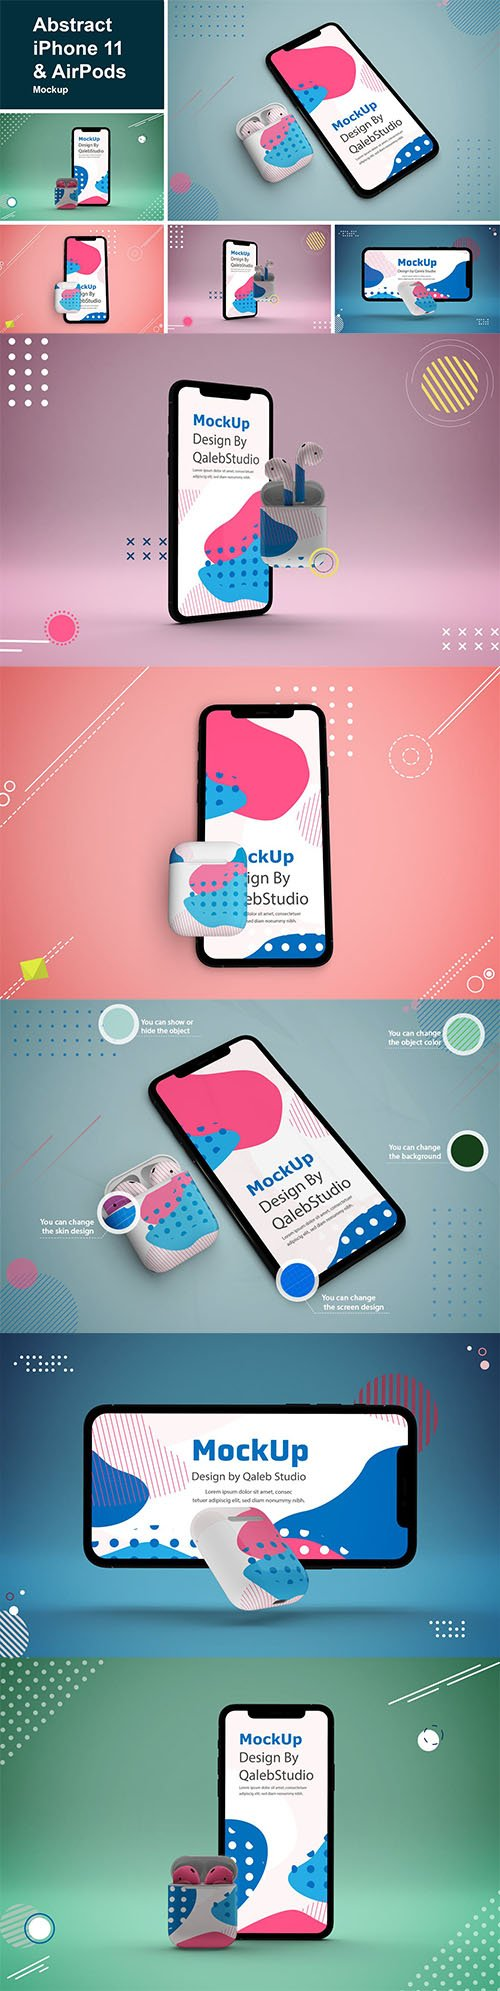 Abstract iPhone 11 & AirPods Mockup PSD